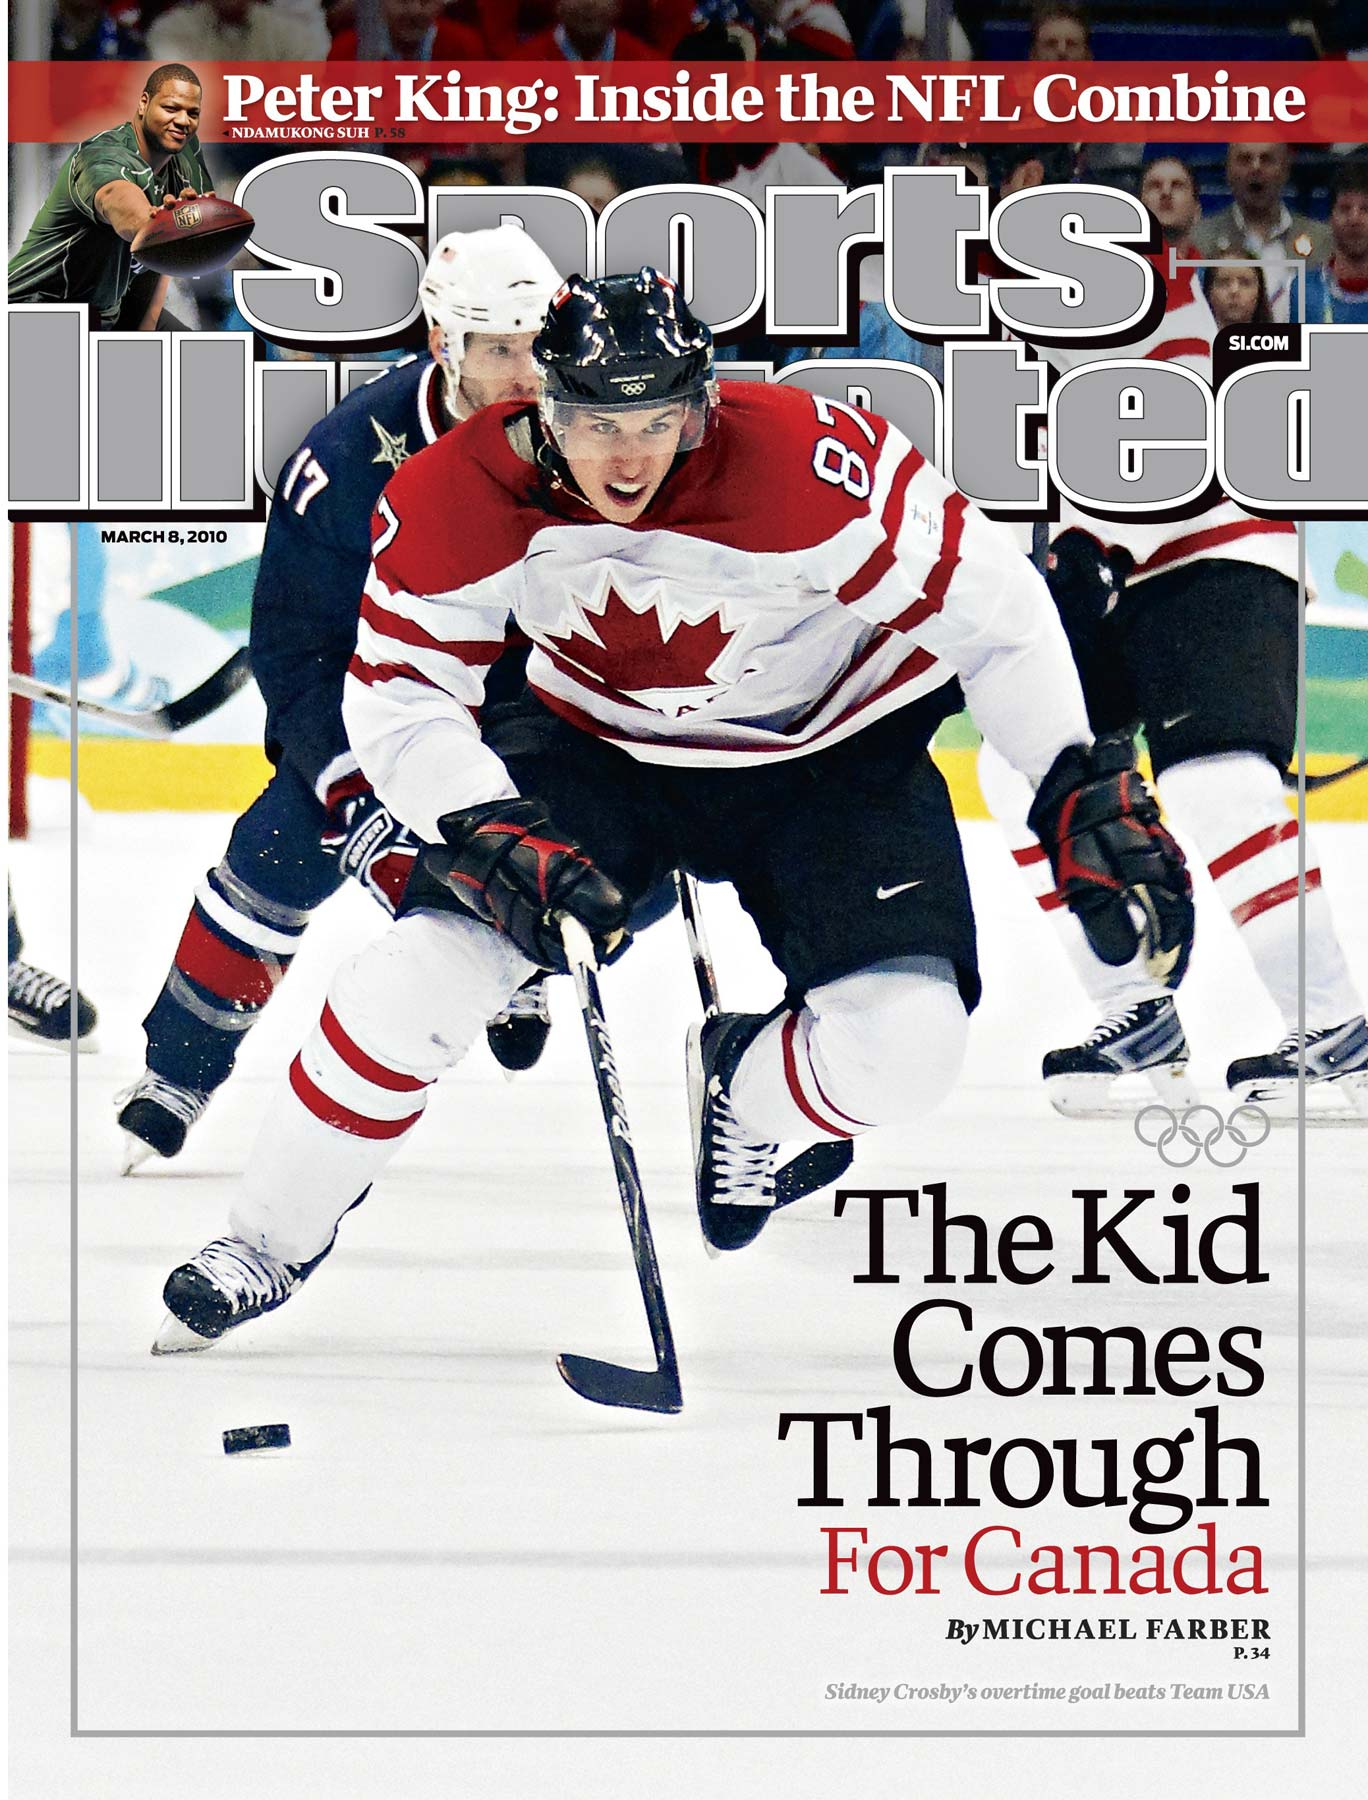 Hockey standout Sydney Crosby lead Team Canada to the Olympic gold and was featured on  the cover of Sports Illustrated. Photograph by Damian Strohmeyer